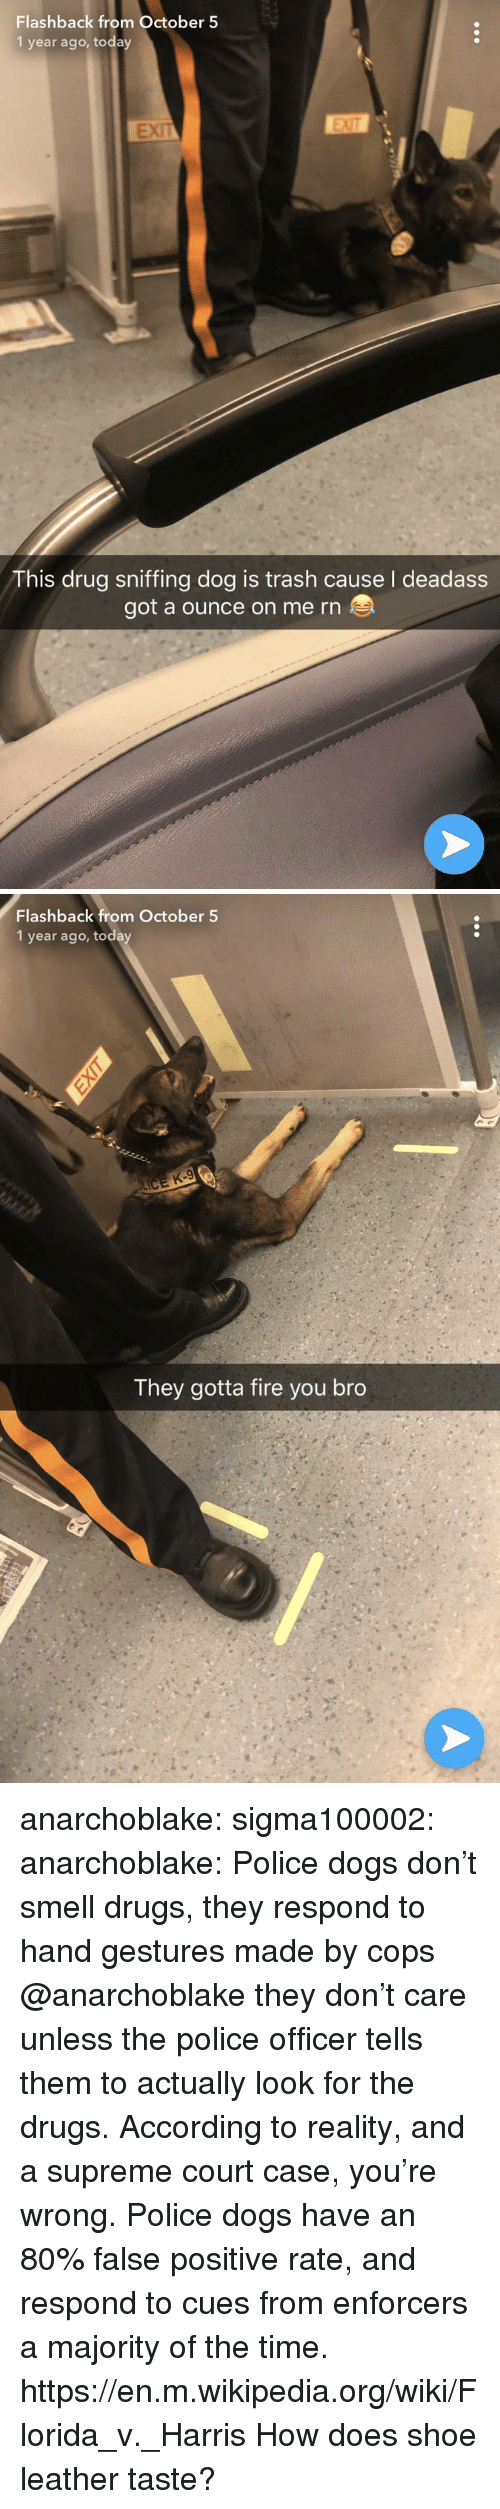 Dogs, Drugs, and Fire: Flashback from October 5  1 year ago, today  EXIT  This drug sniffing dog is trash cause deadass  got a ounce on me rn   Flashback from October 5  1 year ago, today  They gotta fire you bro anarchoblake: sigma100002:   anarchoblake:  Police dogs don't smell drugs, they respond to hand gestures made by cops  @anarchoblake they don't care unless the police officer tells them to actually look for the drugs.   According to reality, and a supreme court case, you're wrong.  Police dogs have an 80% false positive rate, and respond to cues from enforcers a majority of the time.  https://en.m.wikipedia.org/wiki/Florida_v._Harris How does shoe leather taste?